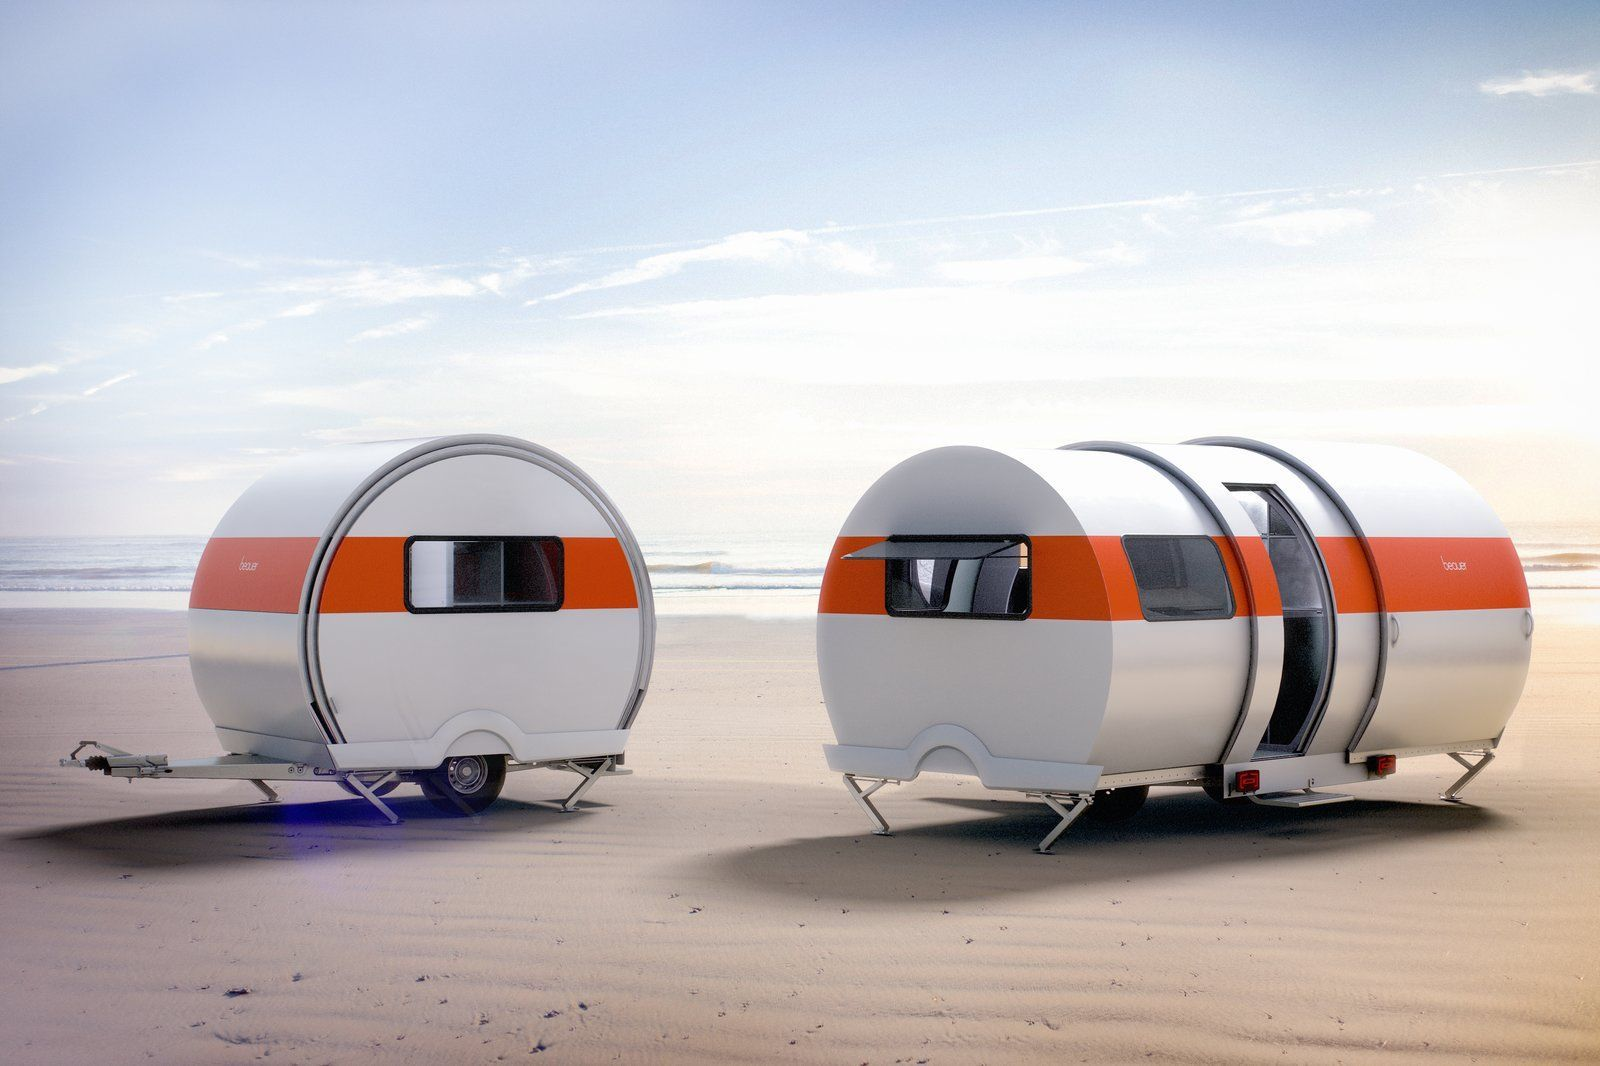 This New Camper Triples in Size With the Push of a Button -  3X Expandable Travel Trailer by BeauEr